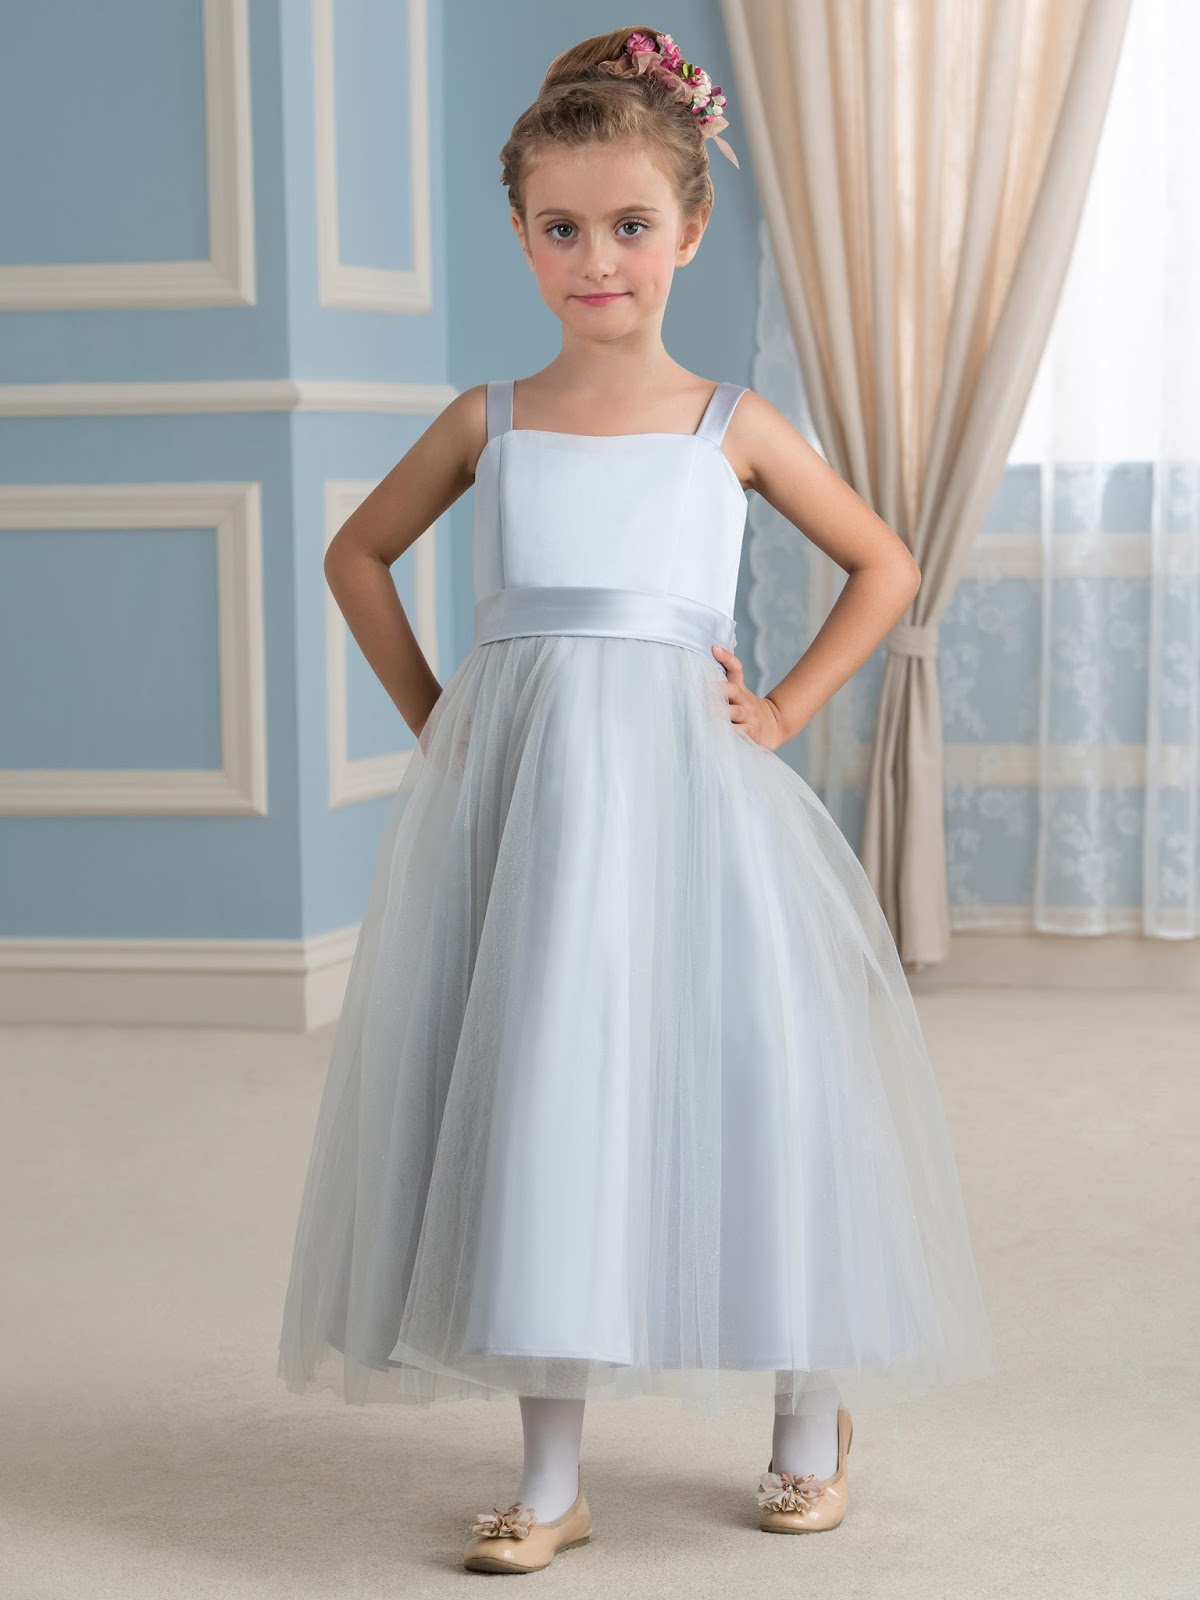 Cute Baby Dresses For Weddings 10 Marvelous Fashion Shopping Affordable Gowns